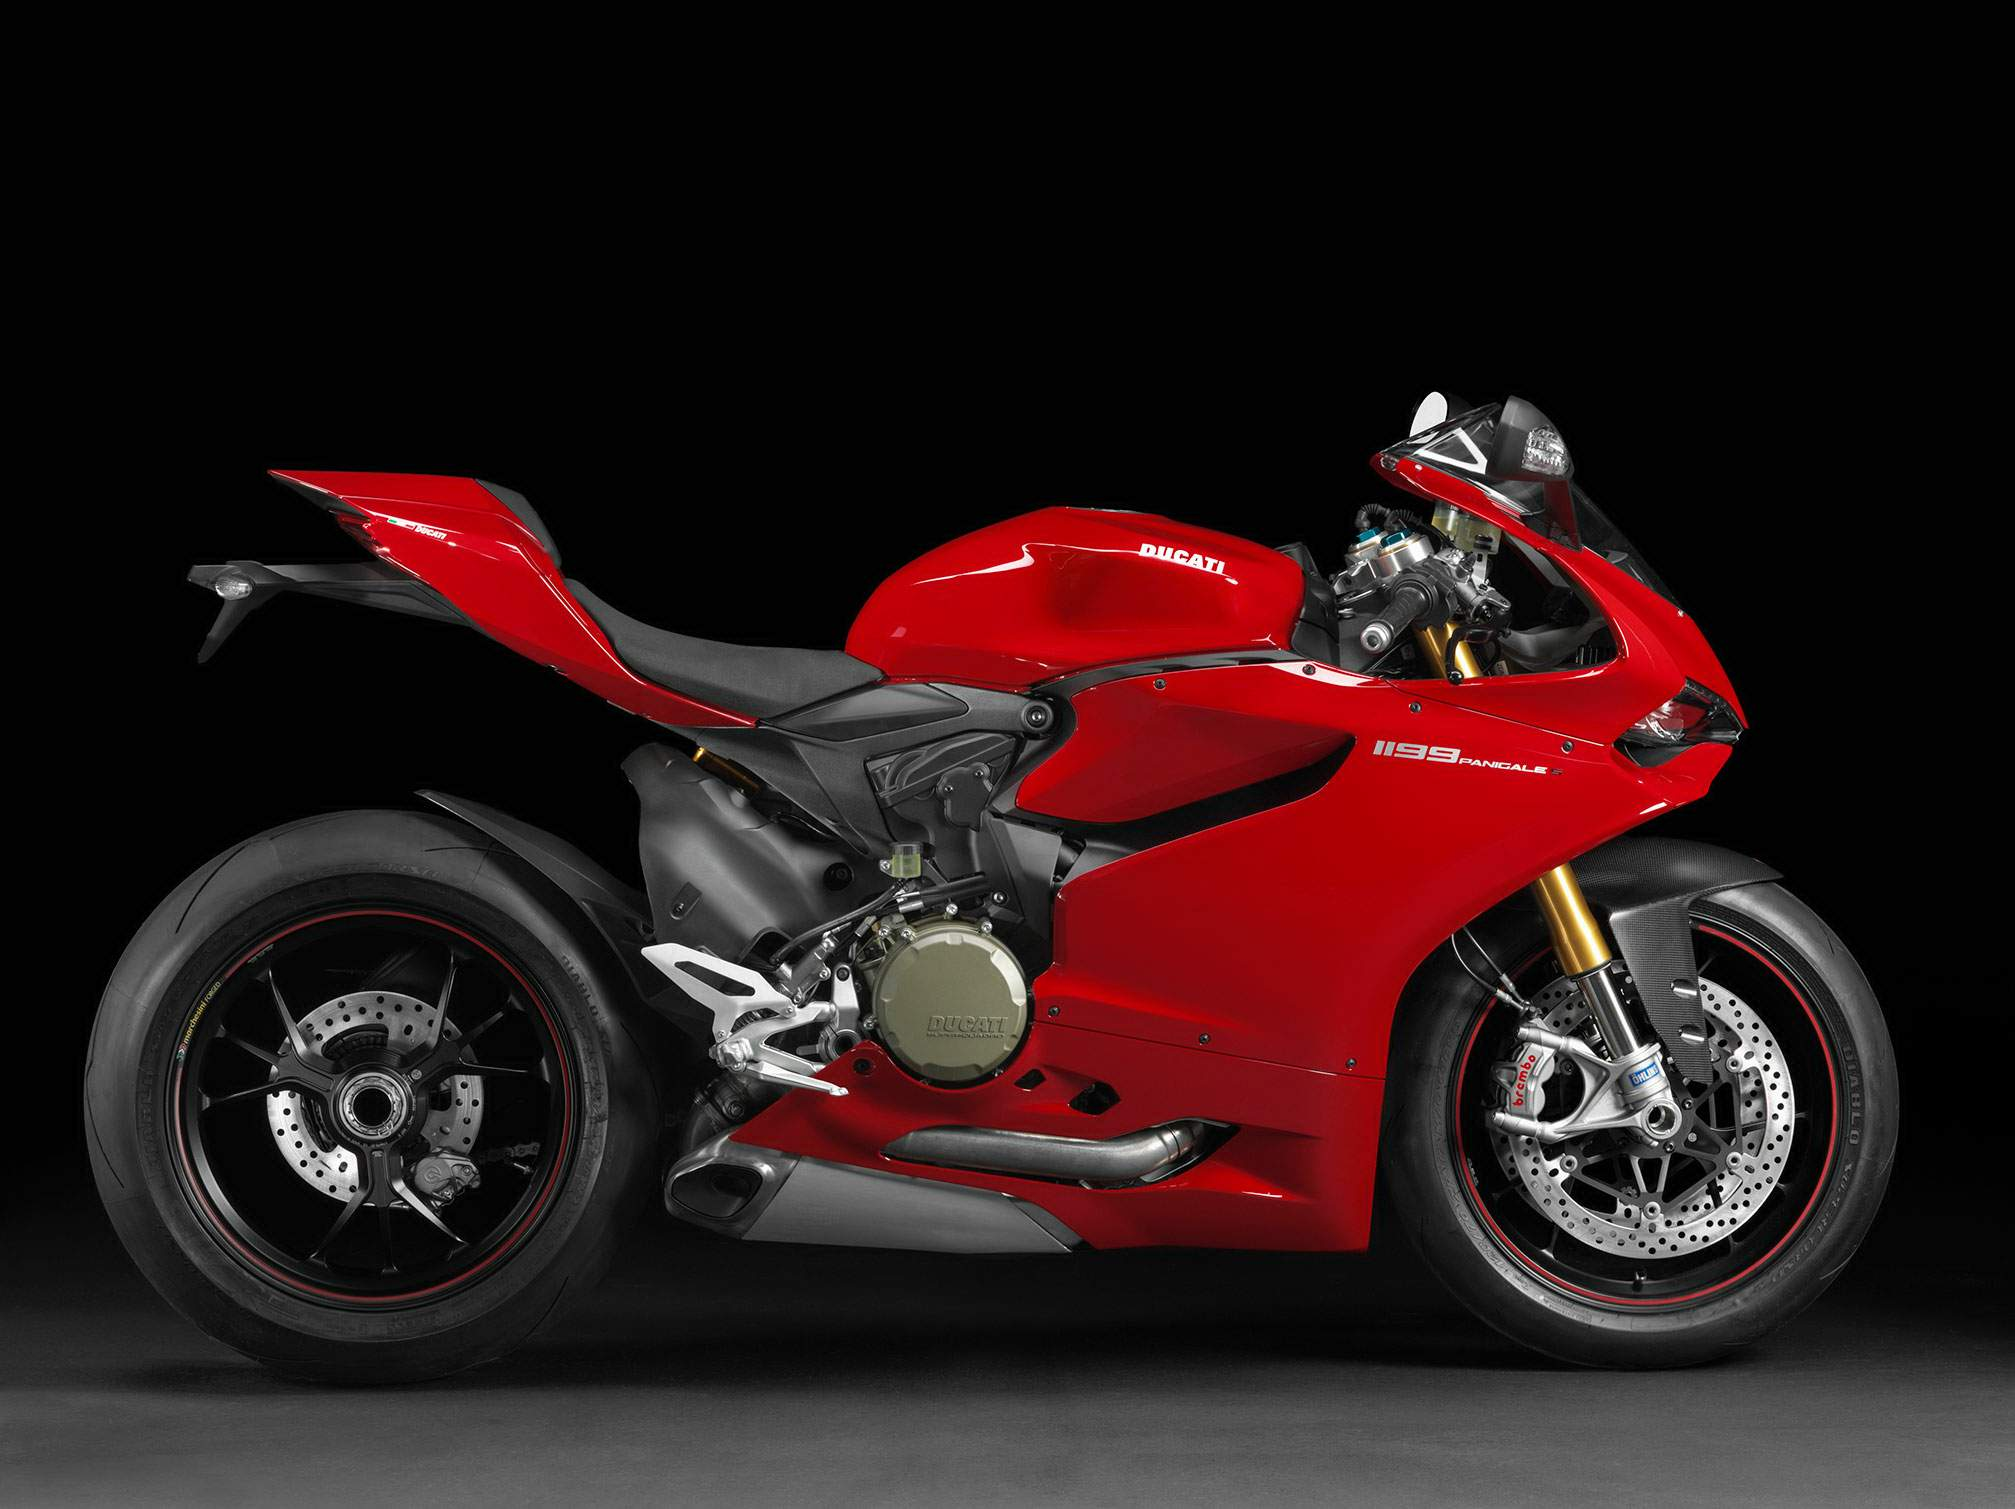 Ducati 1299 Panigale S 4k Wallpapers: Ducati 1299 Panigale S HD Wallpapers